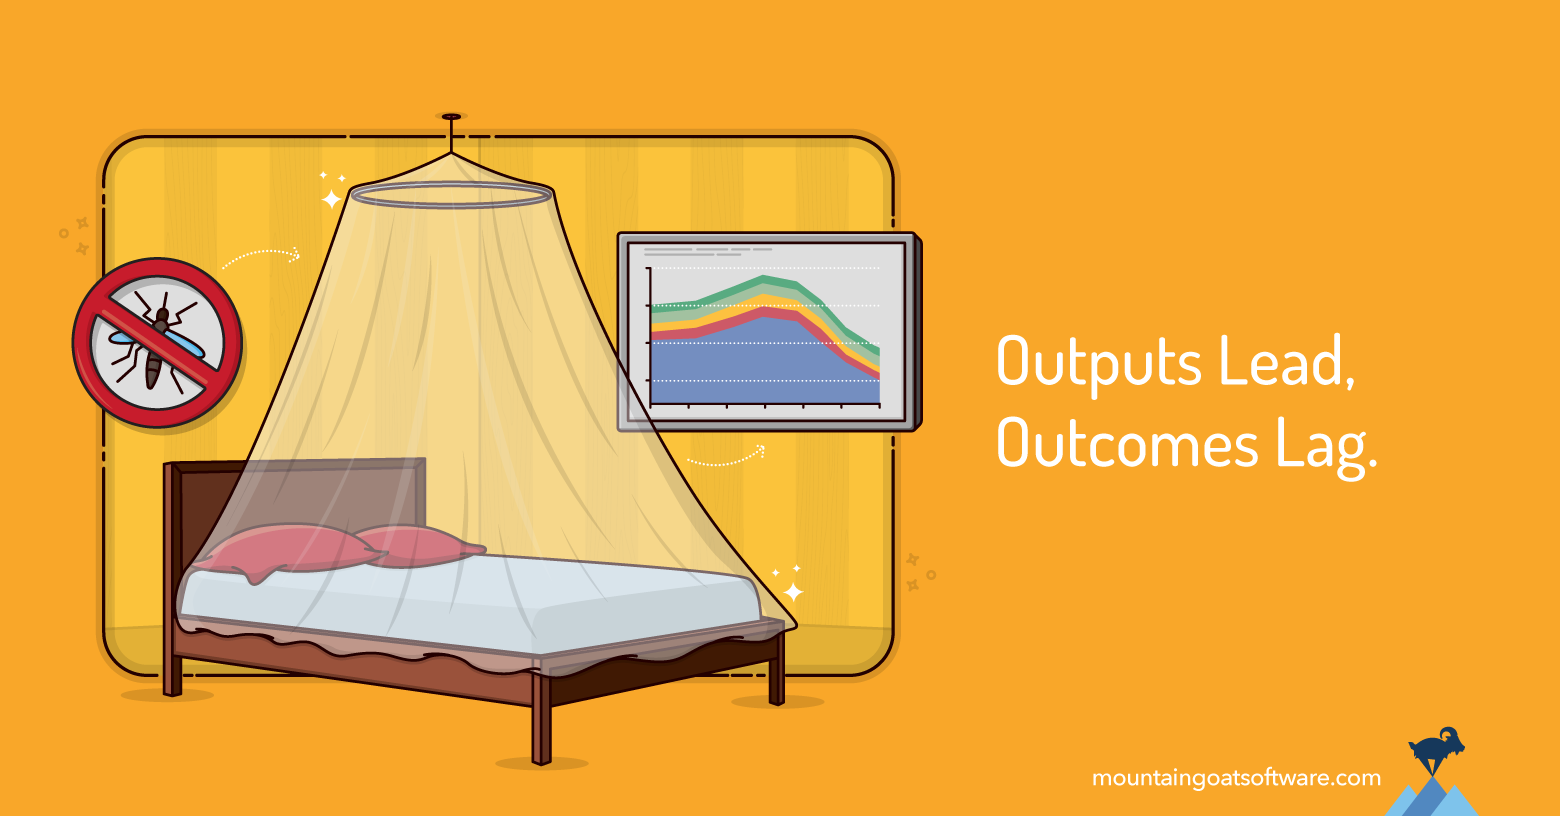 Is the Distinction Between Outcomes and Output Overdone?